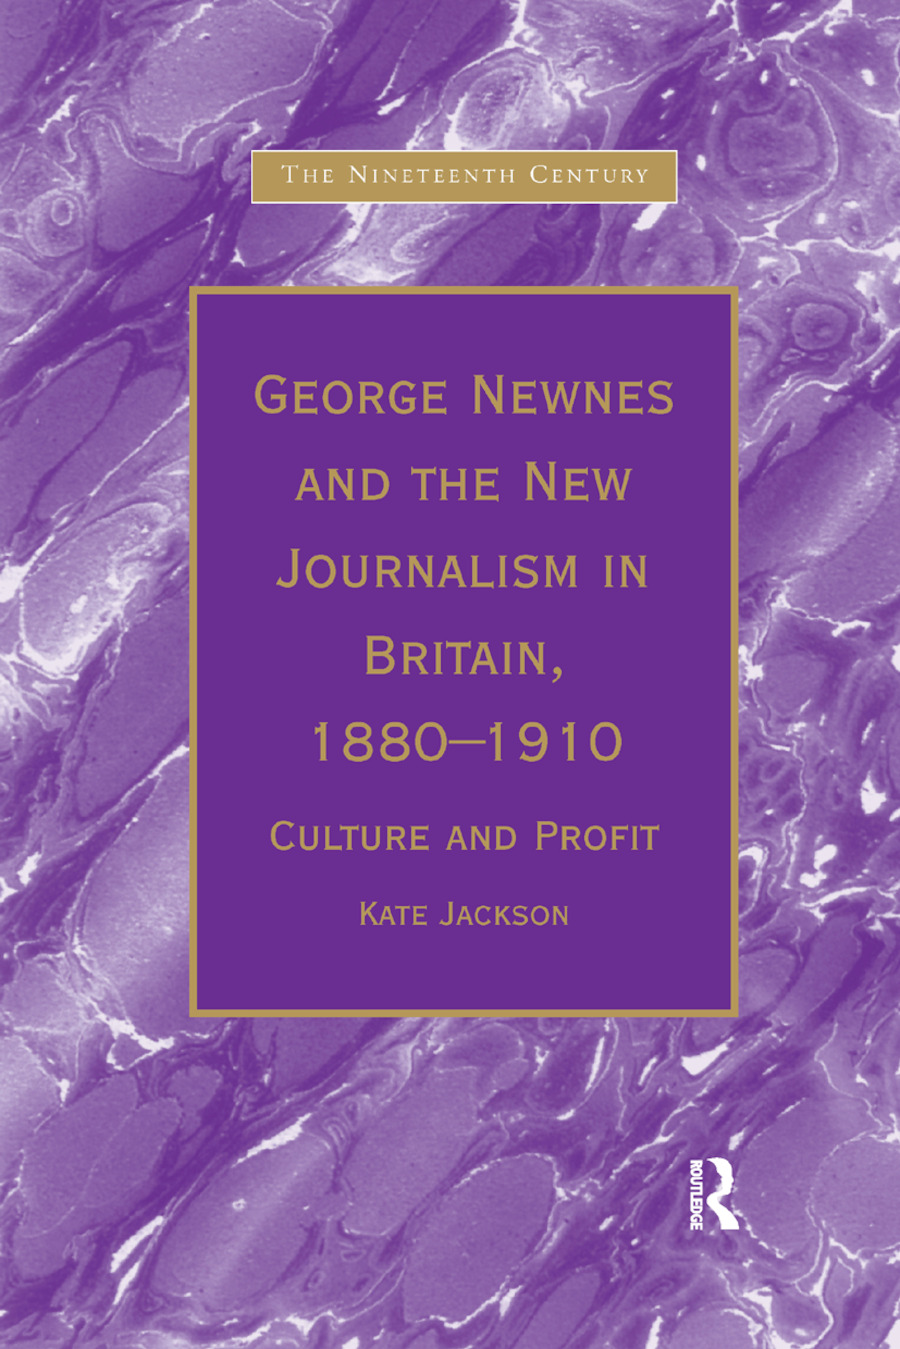 George Newnes and the New Journalism in Britain, 1880�1910: Culture and Profit book cover